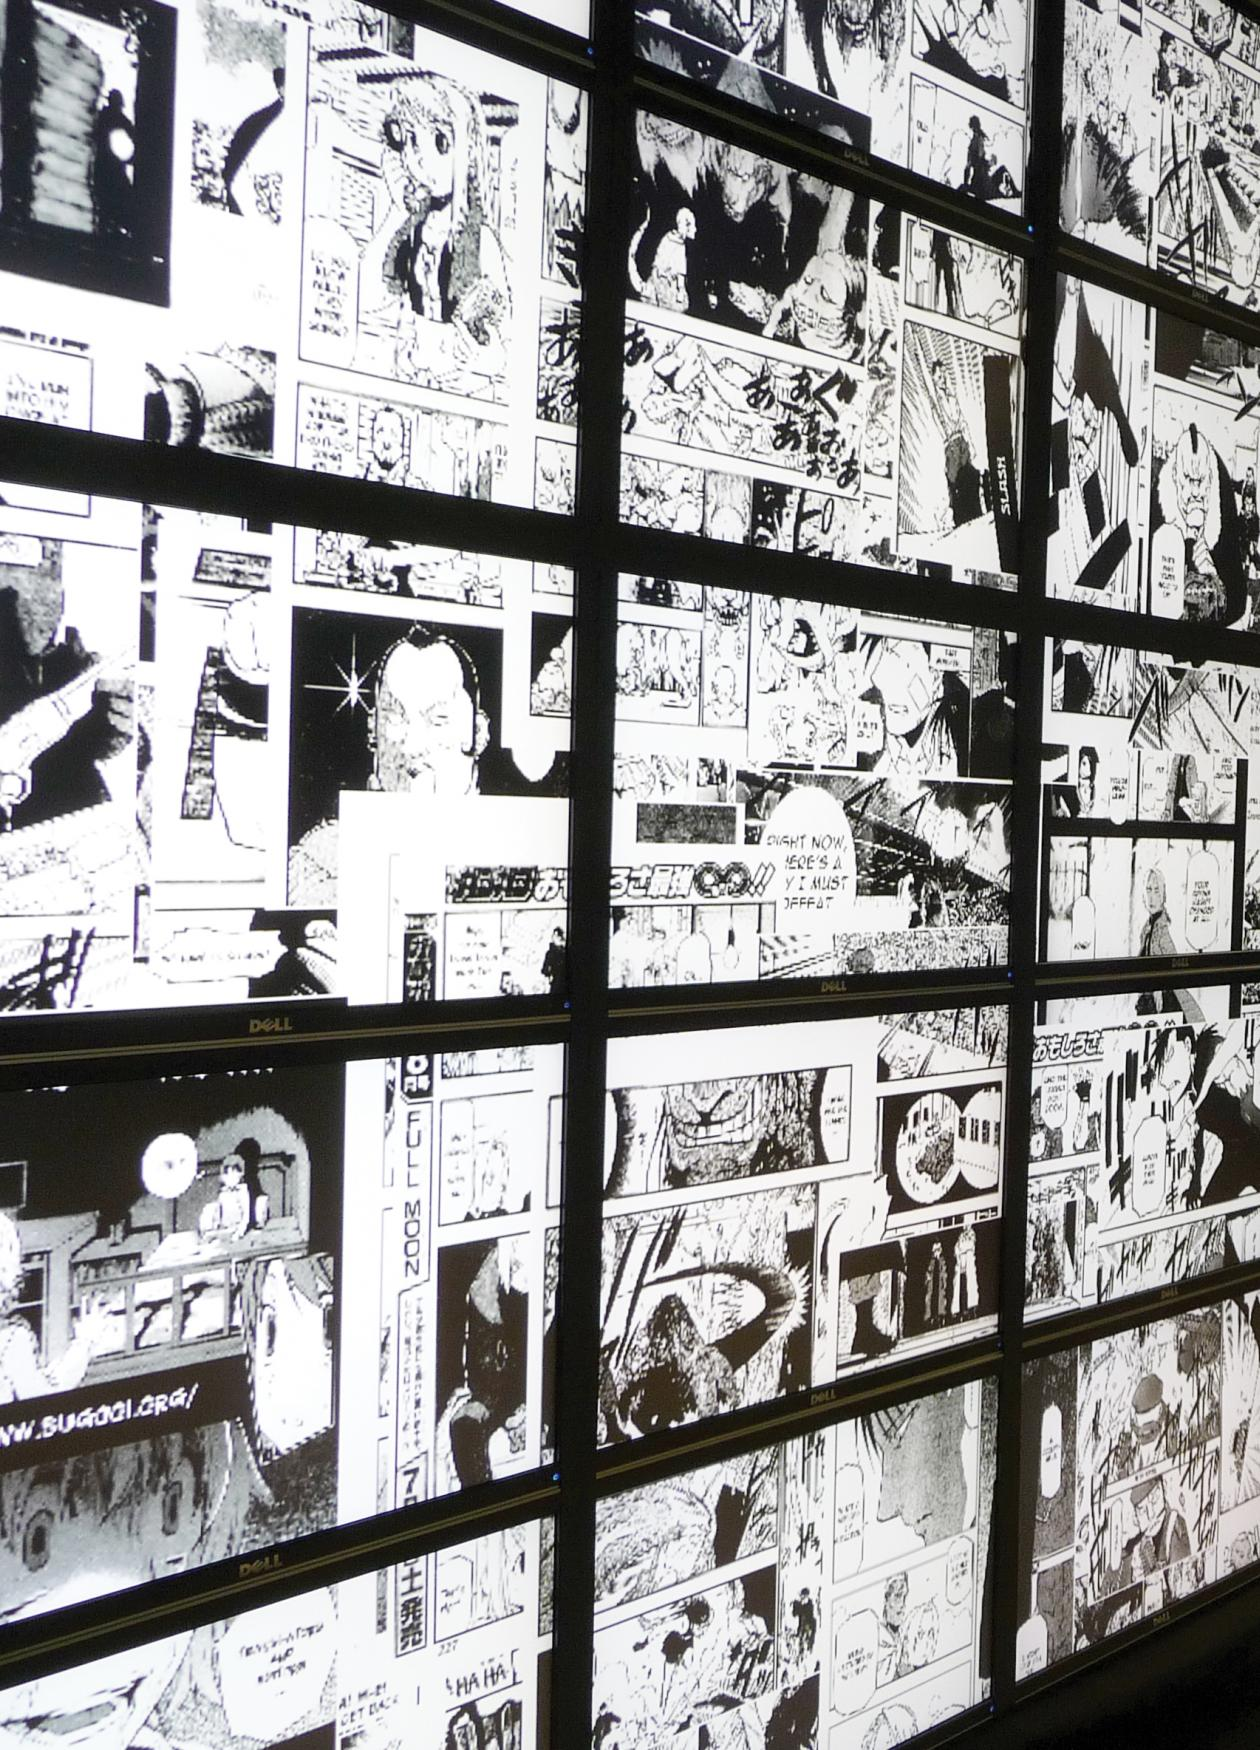 Two men stand in front of numerous small screens lit up with black and white manga illustrations